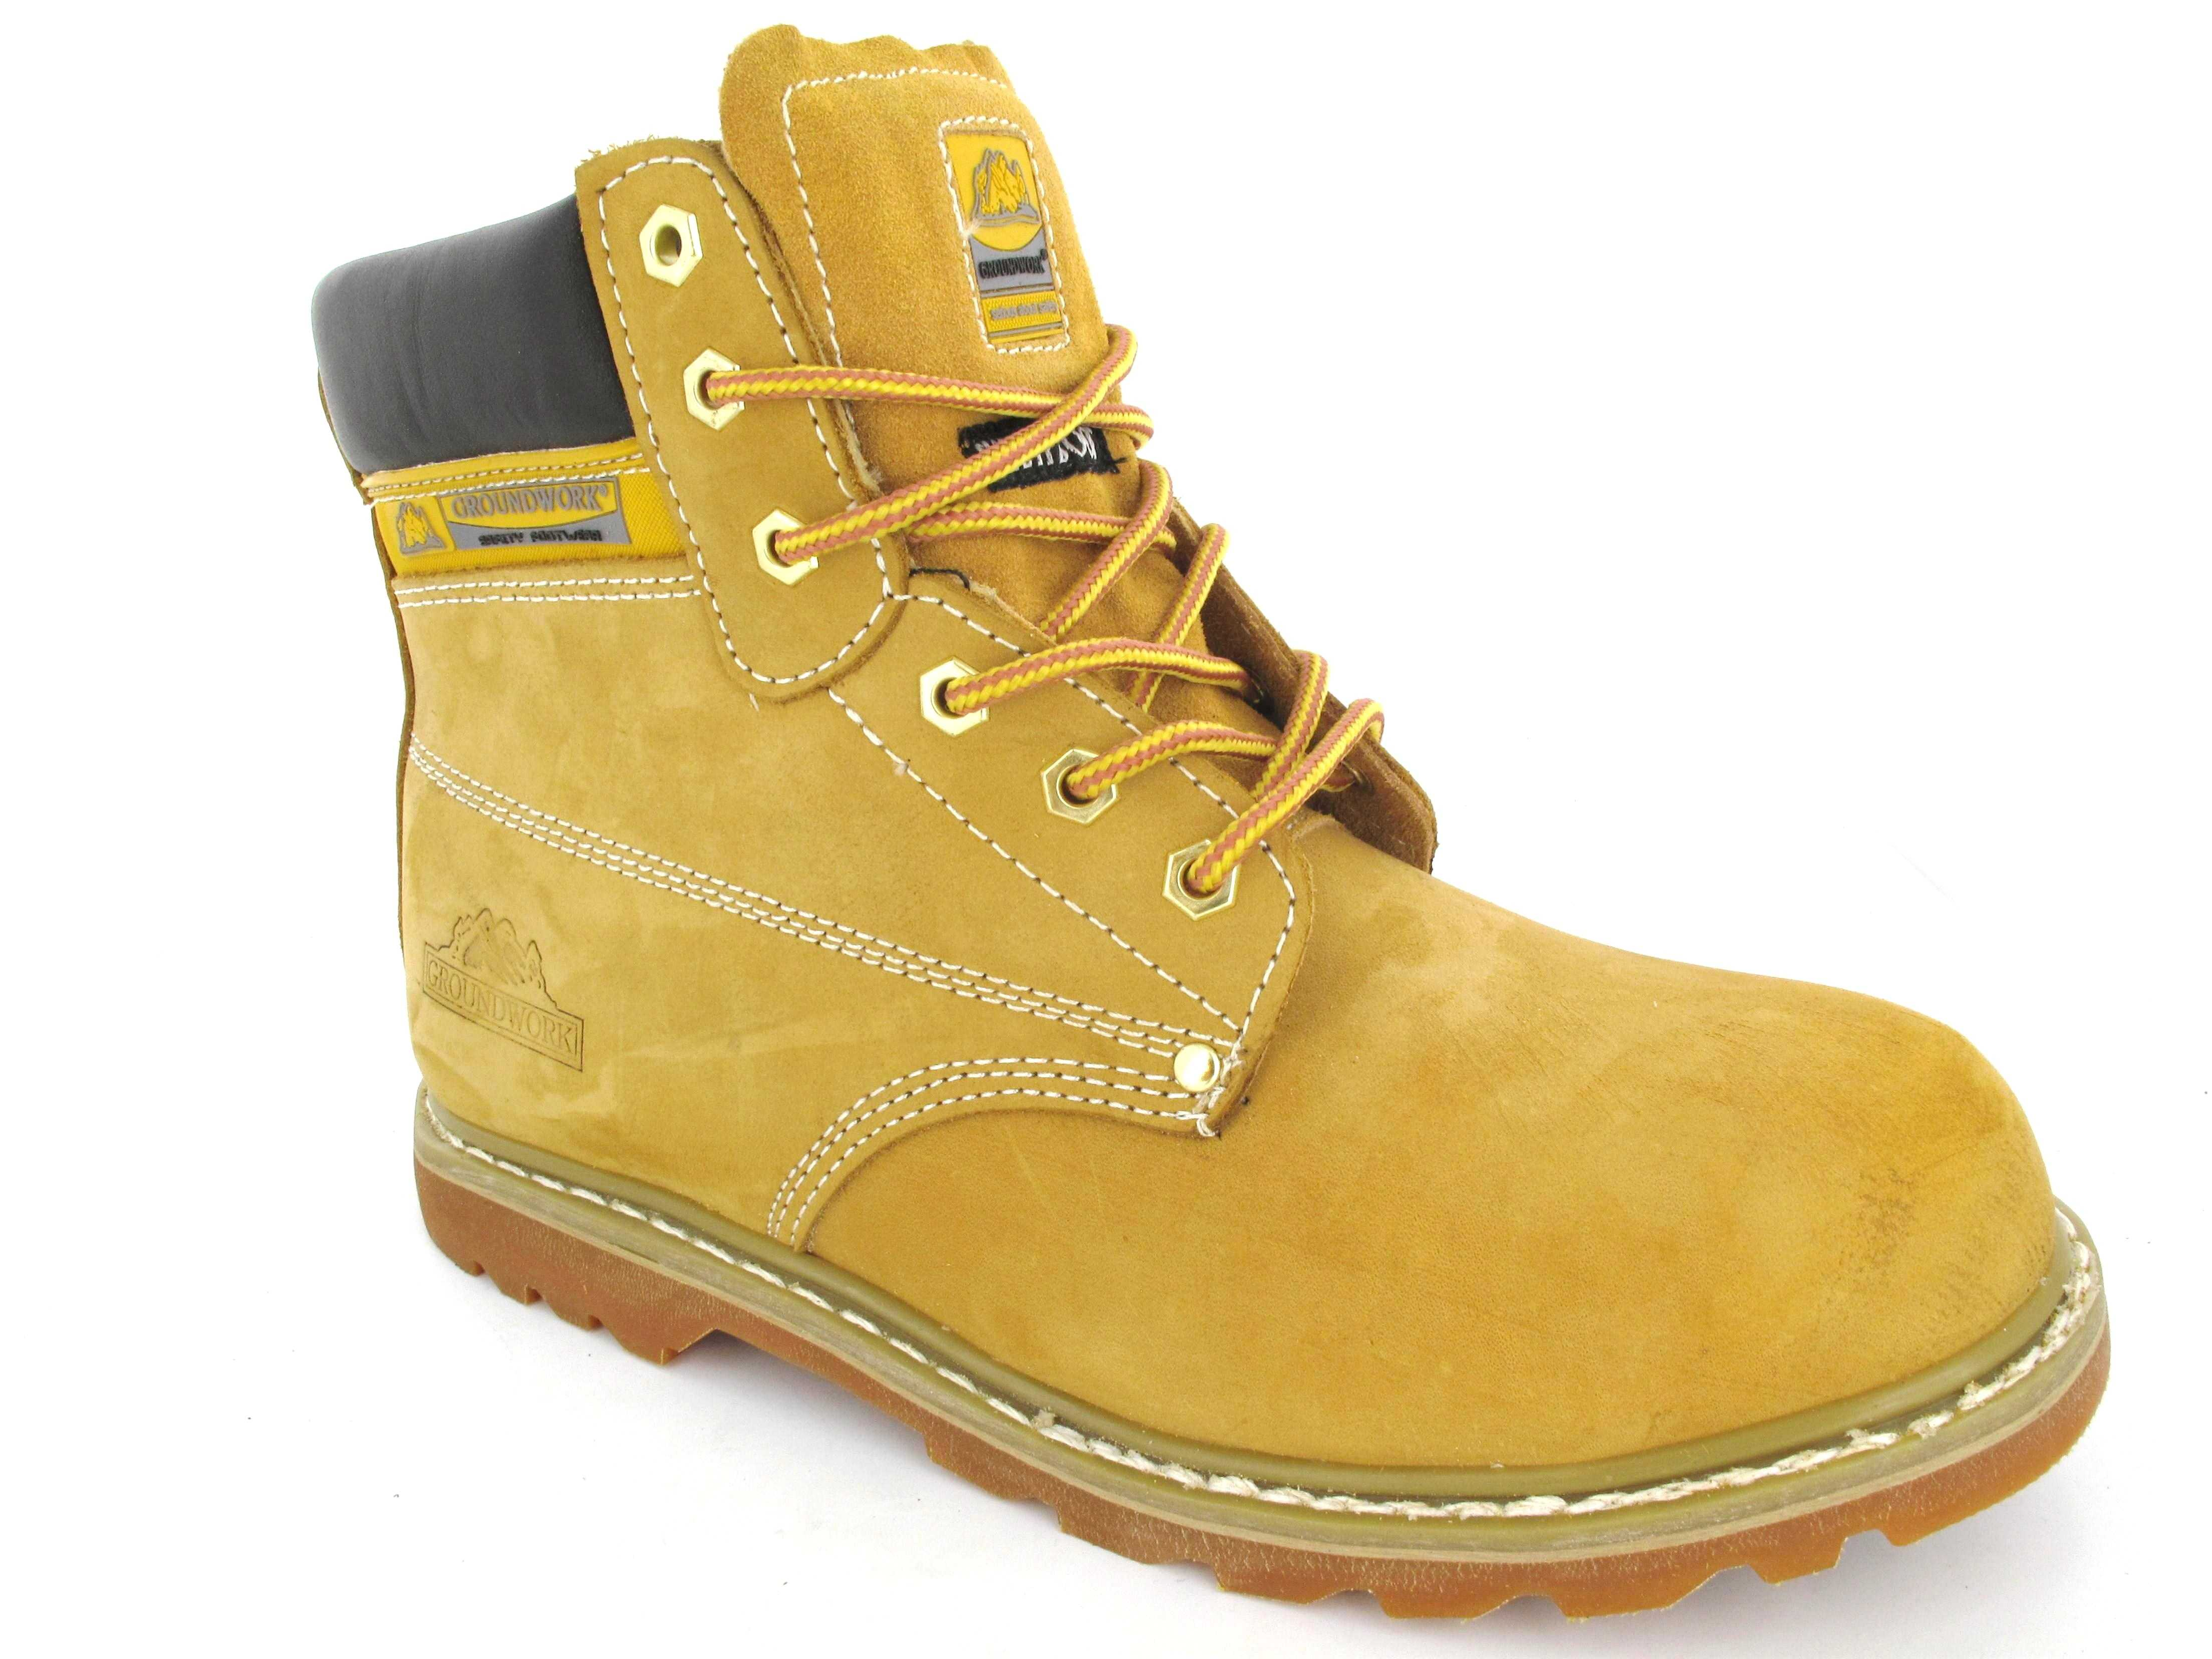 Men's Work Boots up to 70% off at Sierra Trading Post